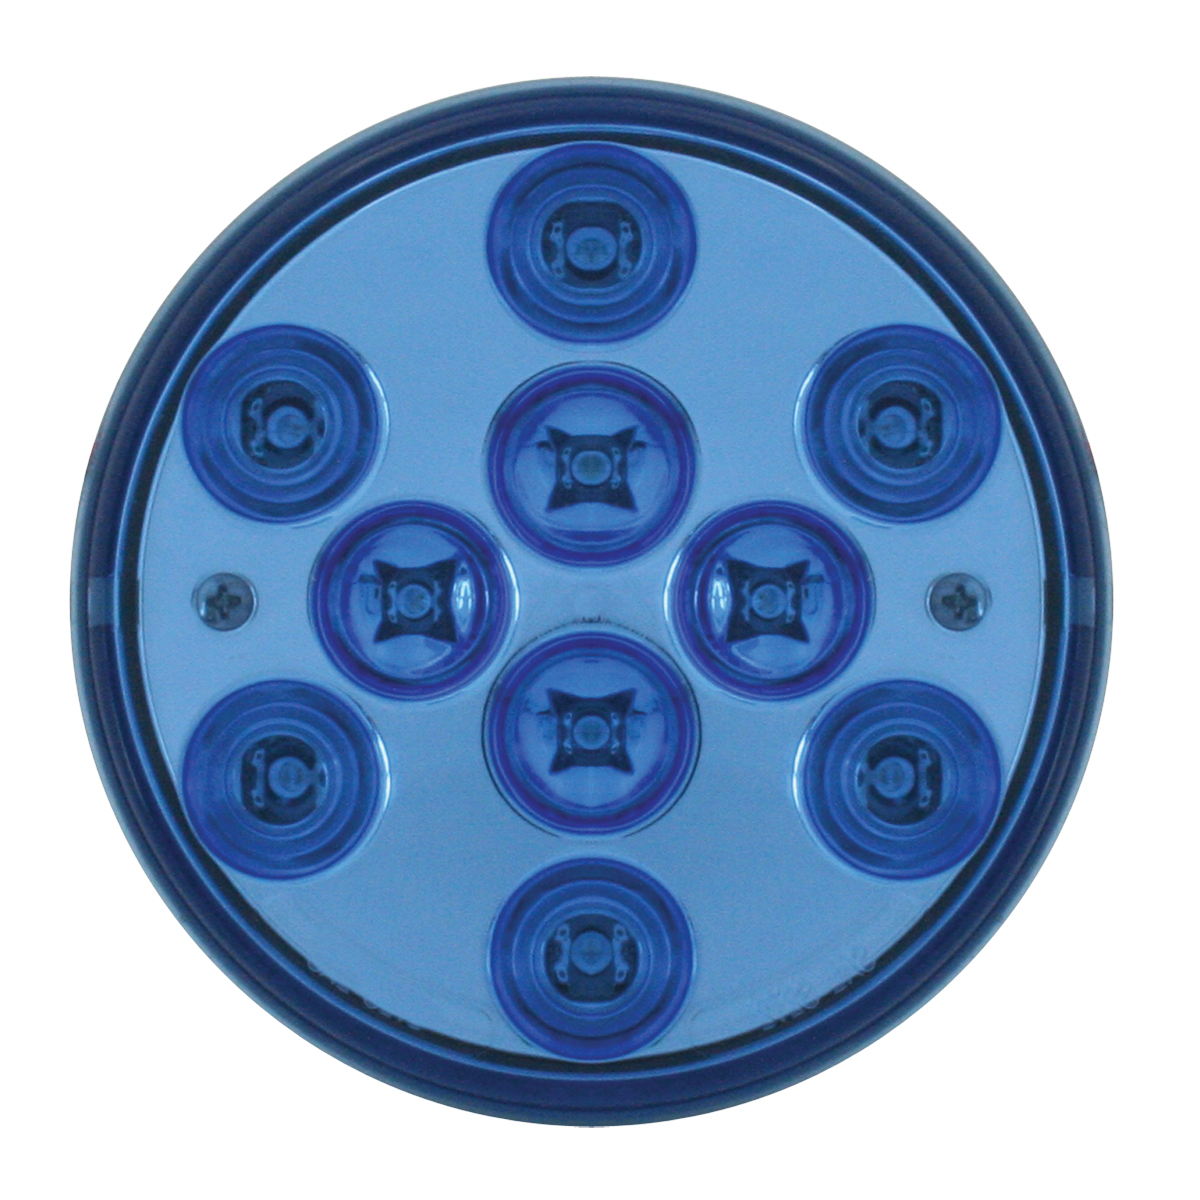 "76848 4"" Mega 10 Plus LED Light in Blue/Blue"